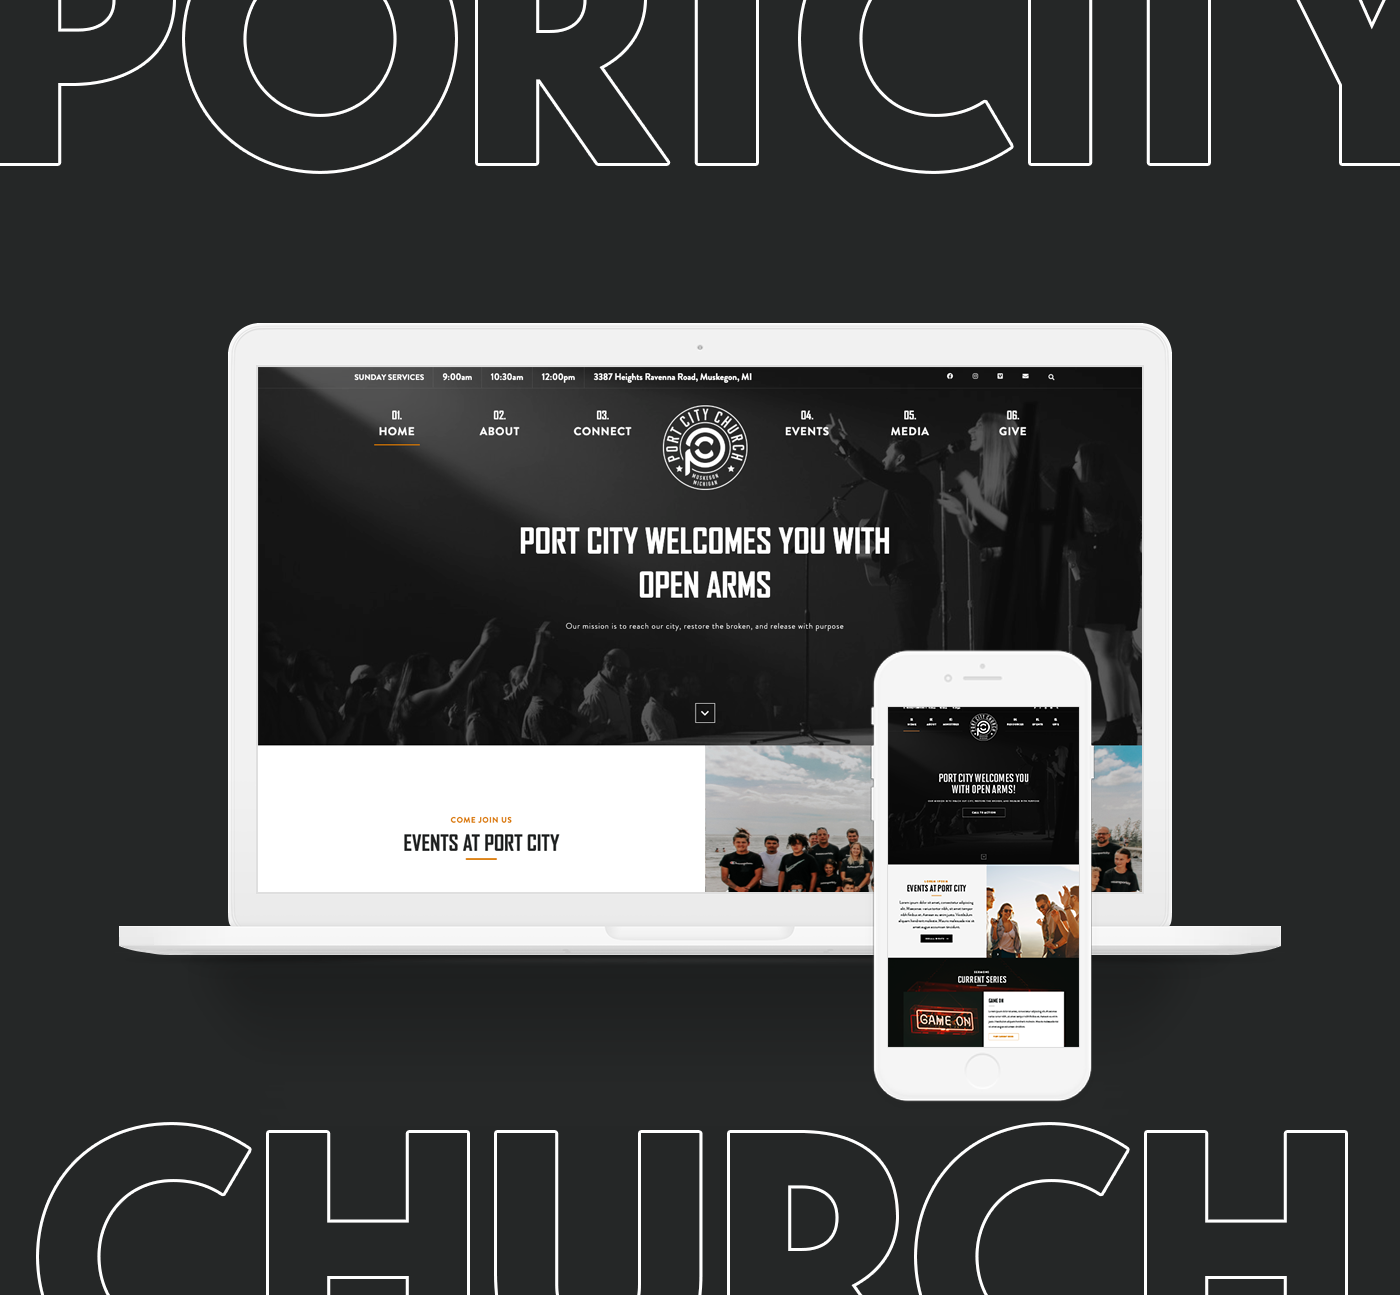 Port City Church